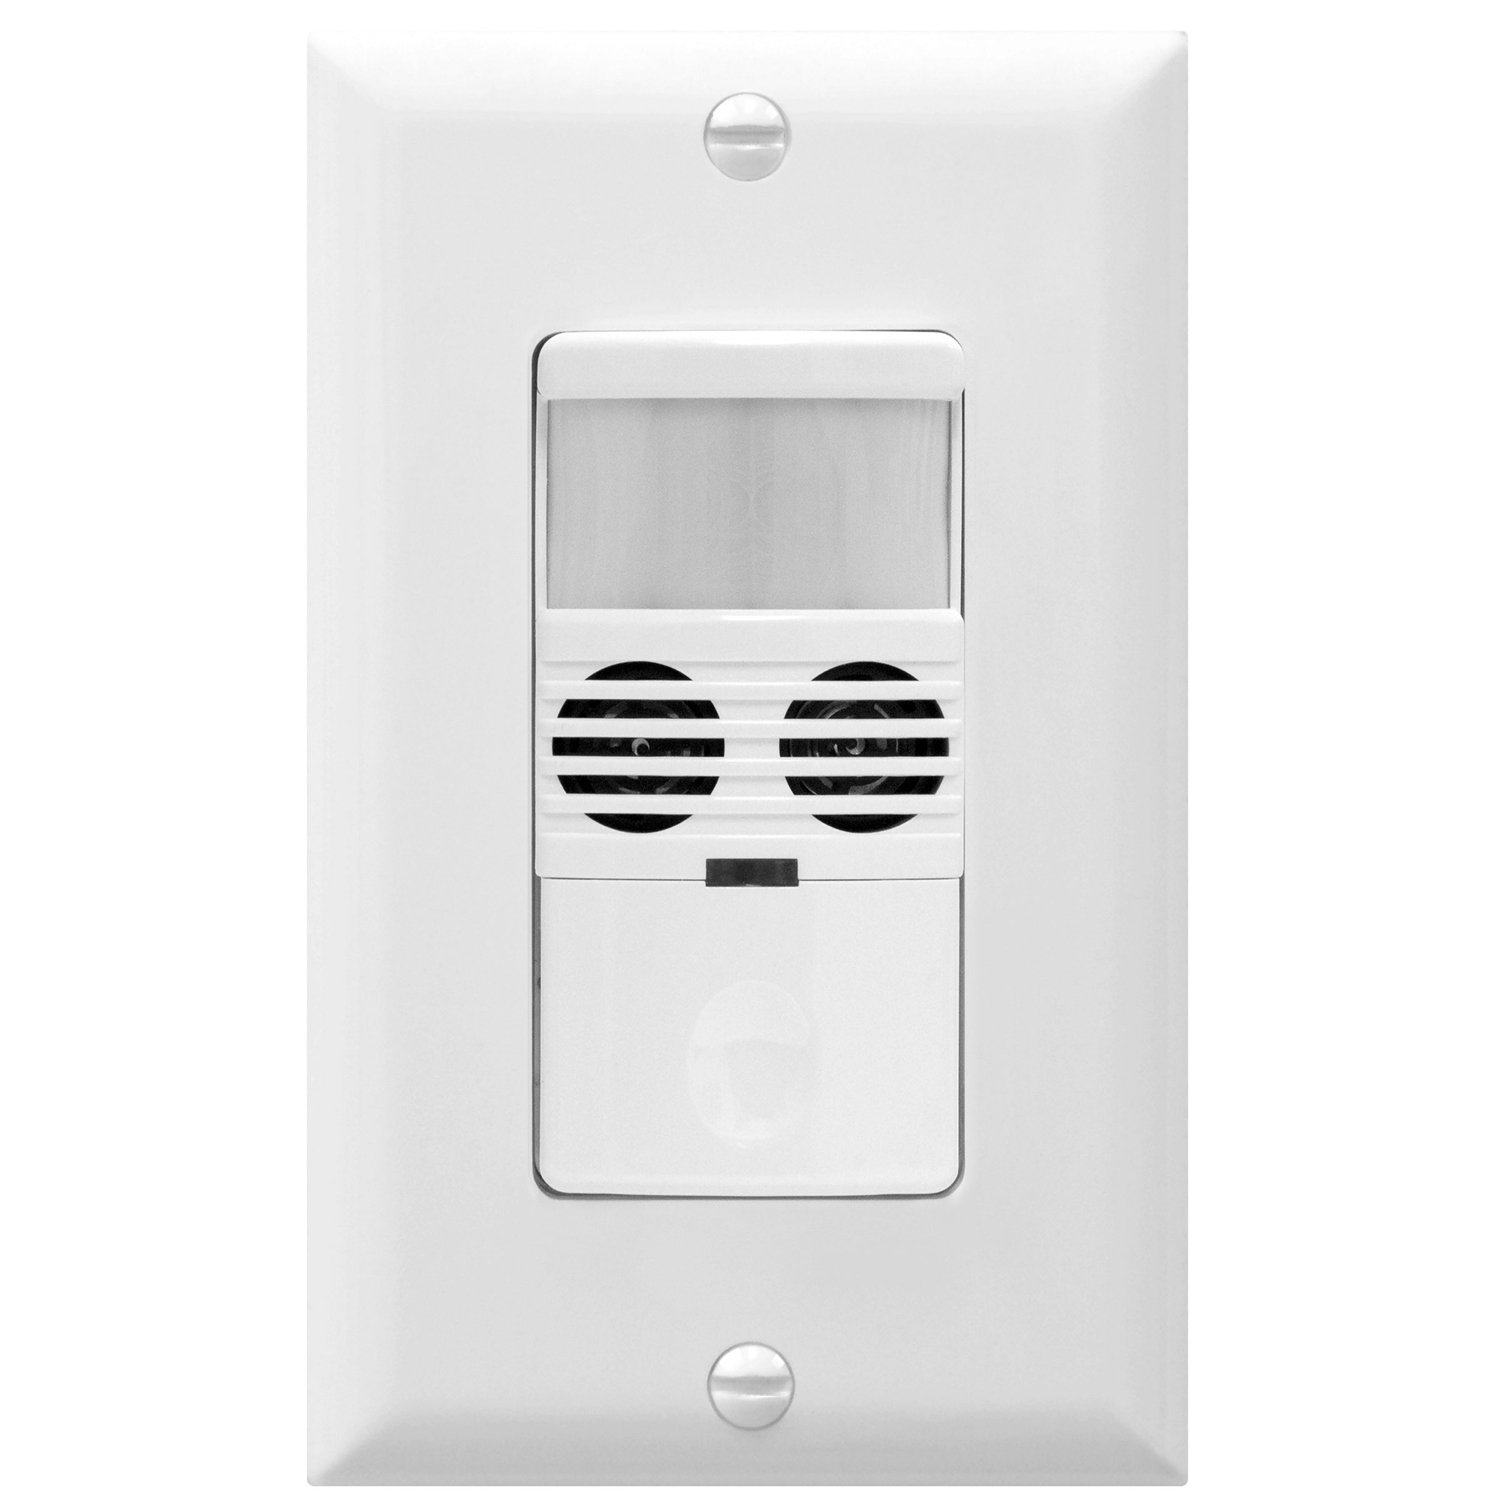 Best Rated In Motion Activated Wall Switches Helpful Customer Wiring A Light Sensor Switch Enerlites Mwos W Ultrasonic And Pir Dual Technology Occupancy